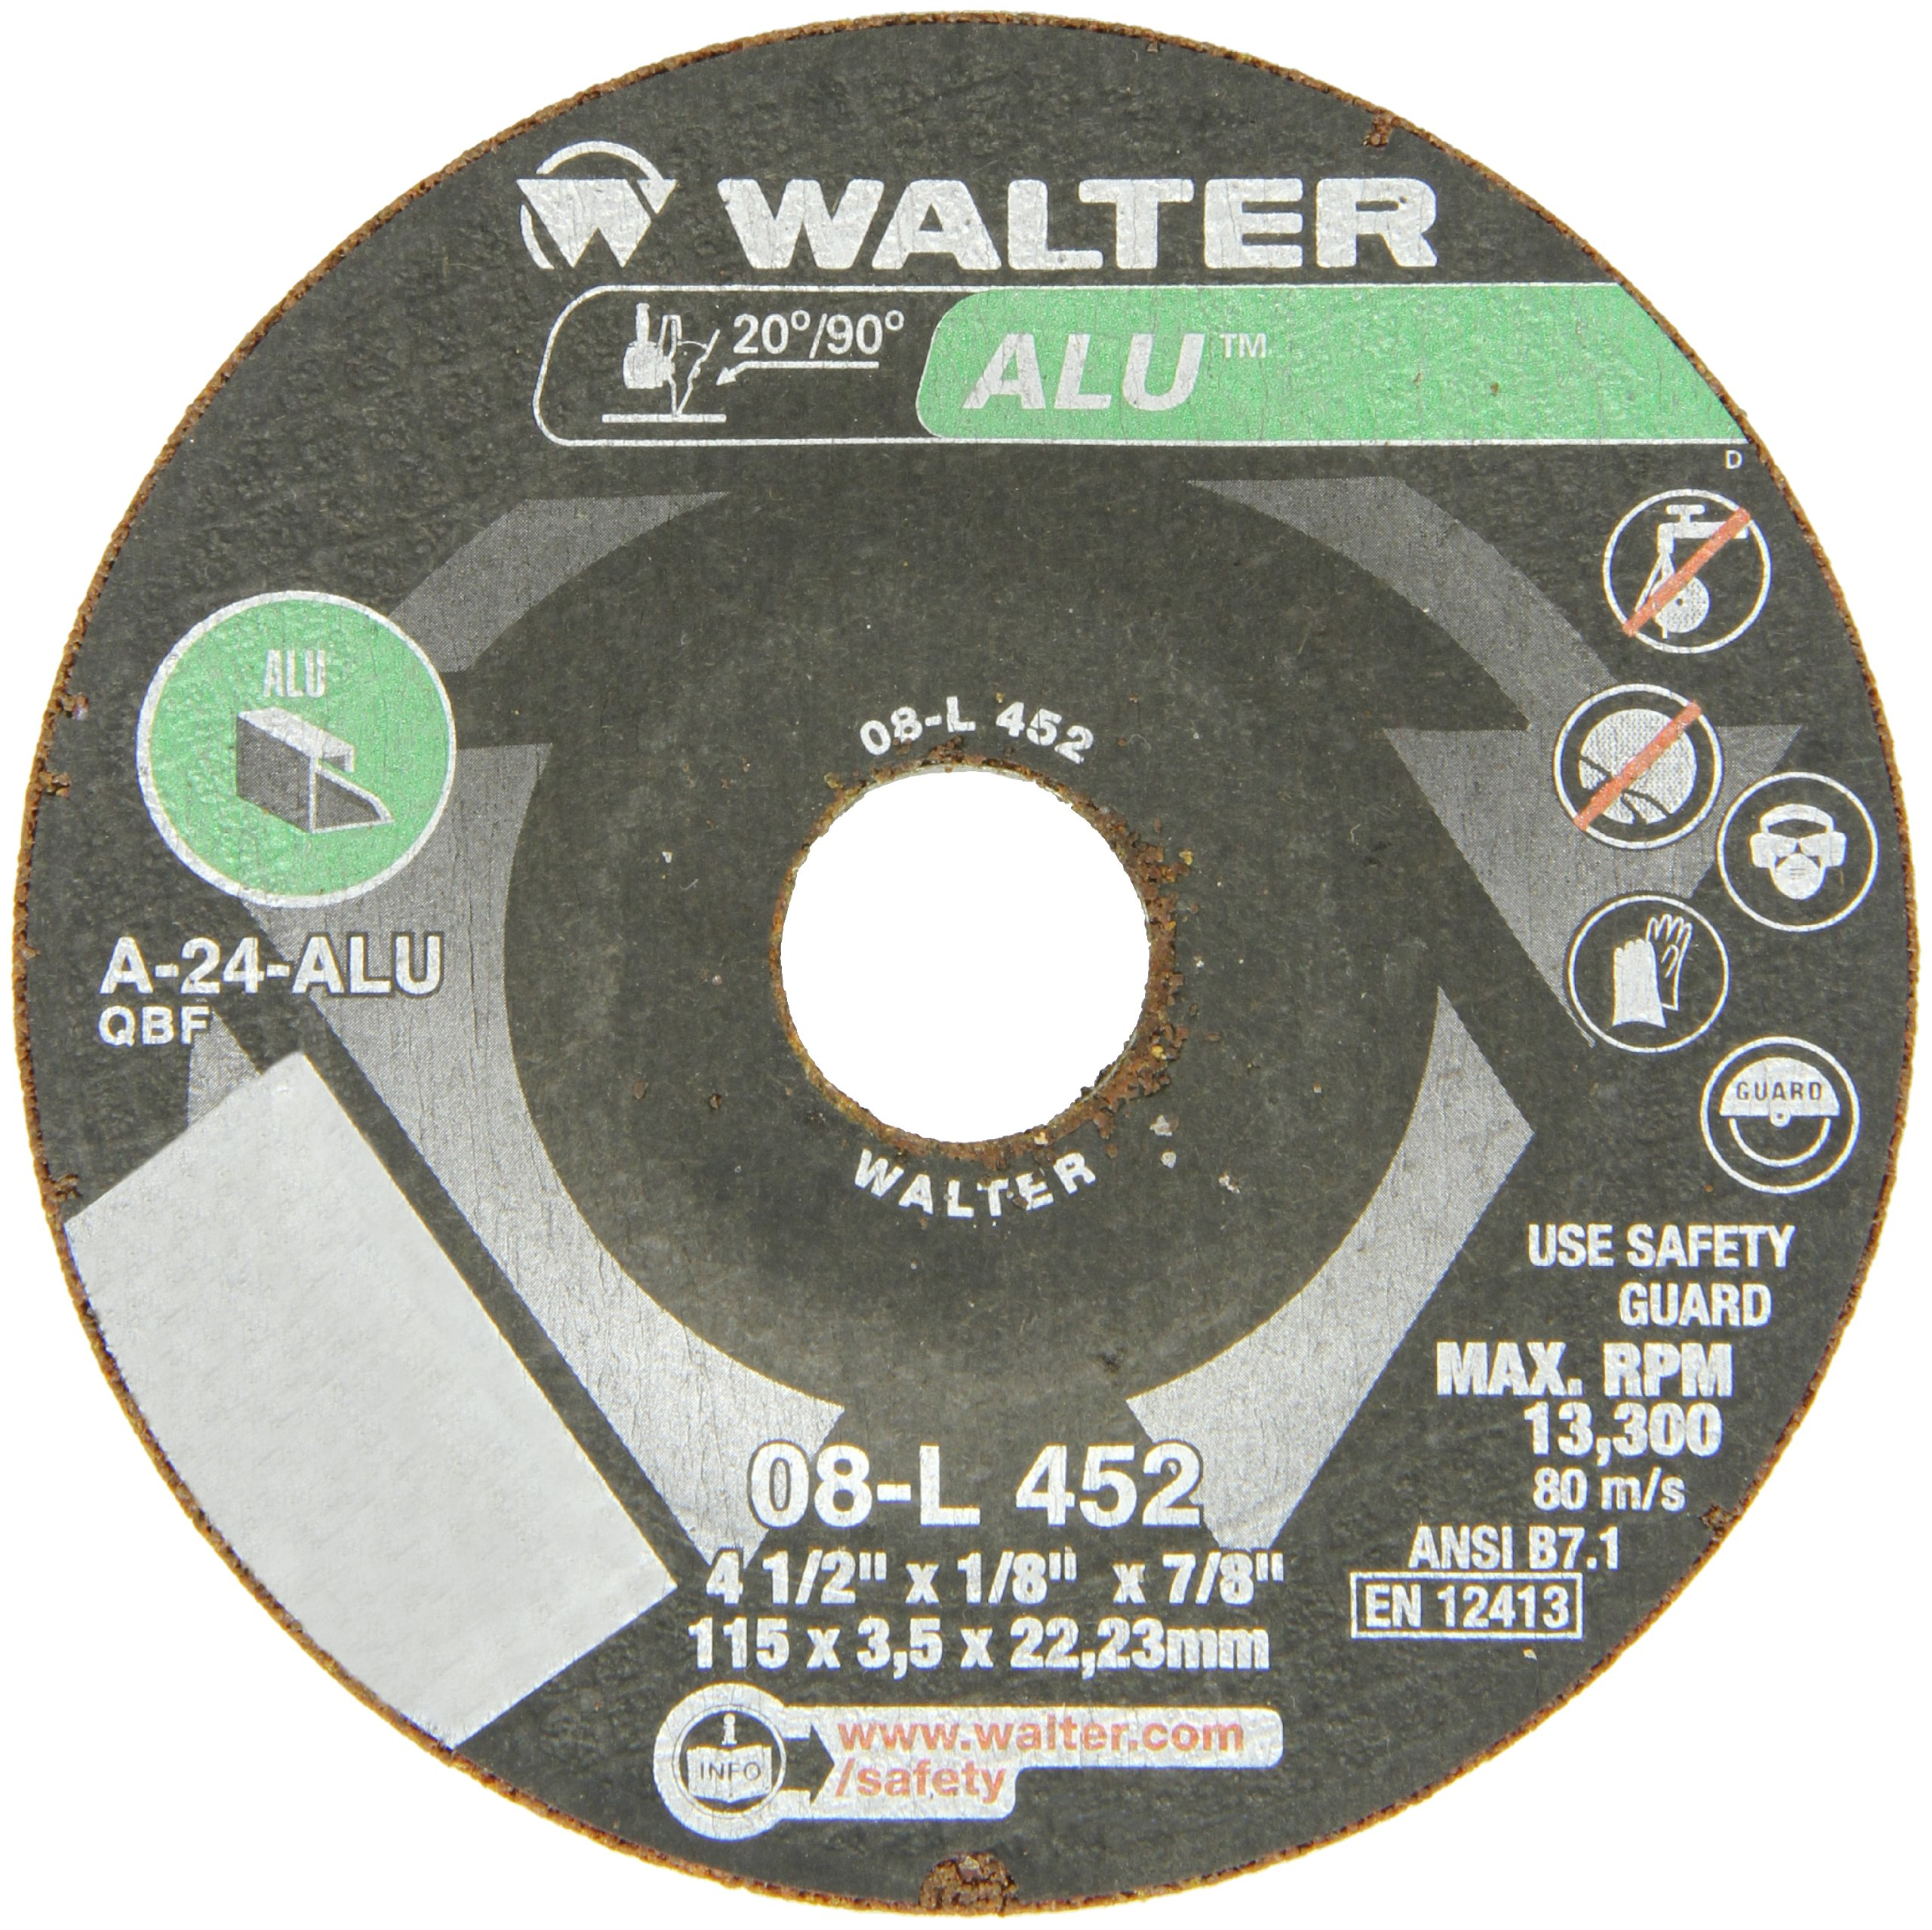 Walter Aluminum Performance Grinding and Cutting Wheel, Type 27, Round Hole, Aluminum Oxide, 4-1/2'' Diameter, 1/8'' Thick, 7/8'' Arbor, Grit A-24-ALU (Pack of 25)